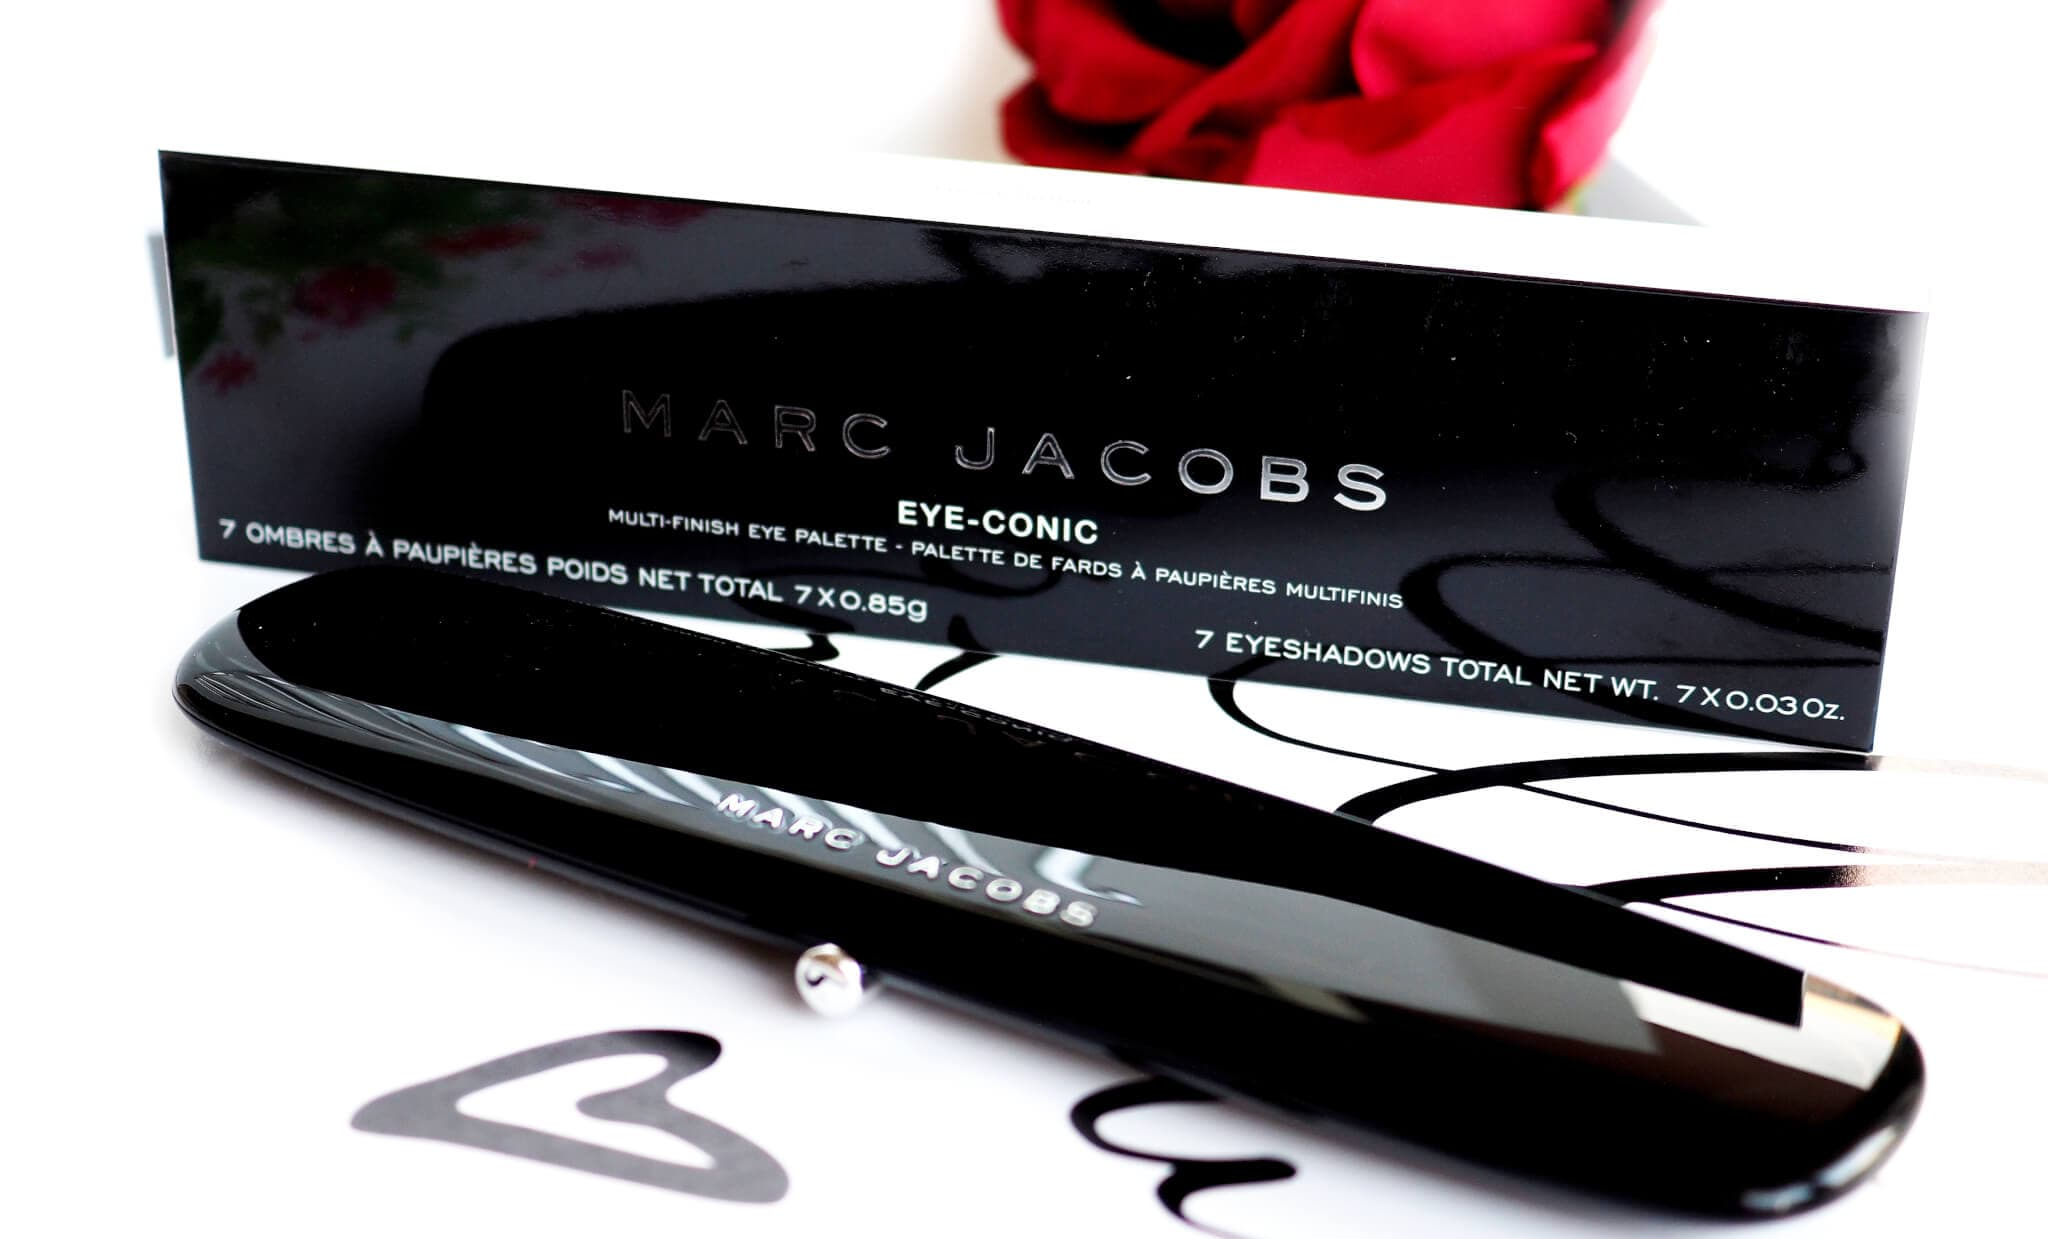 Recenzja MARC JACOBS EYE-CONIC PROVOCOUTURE